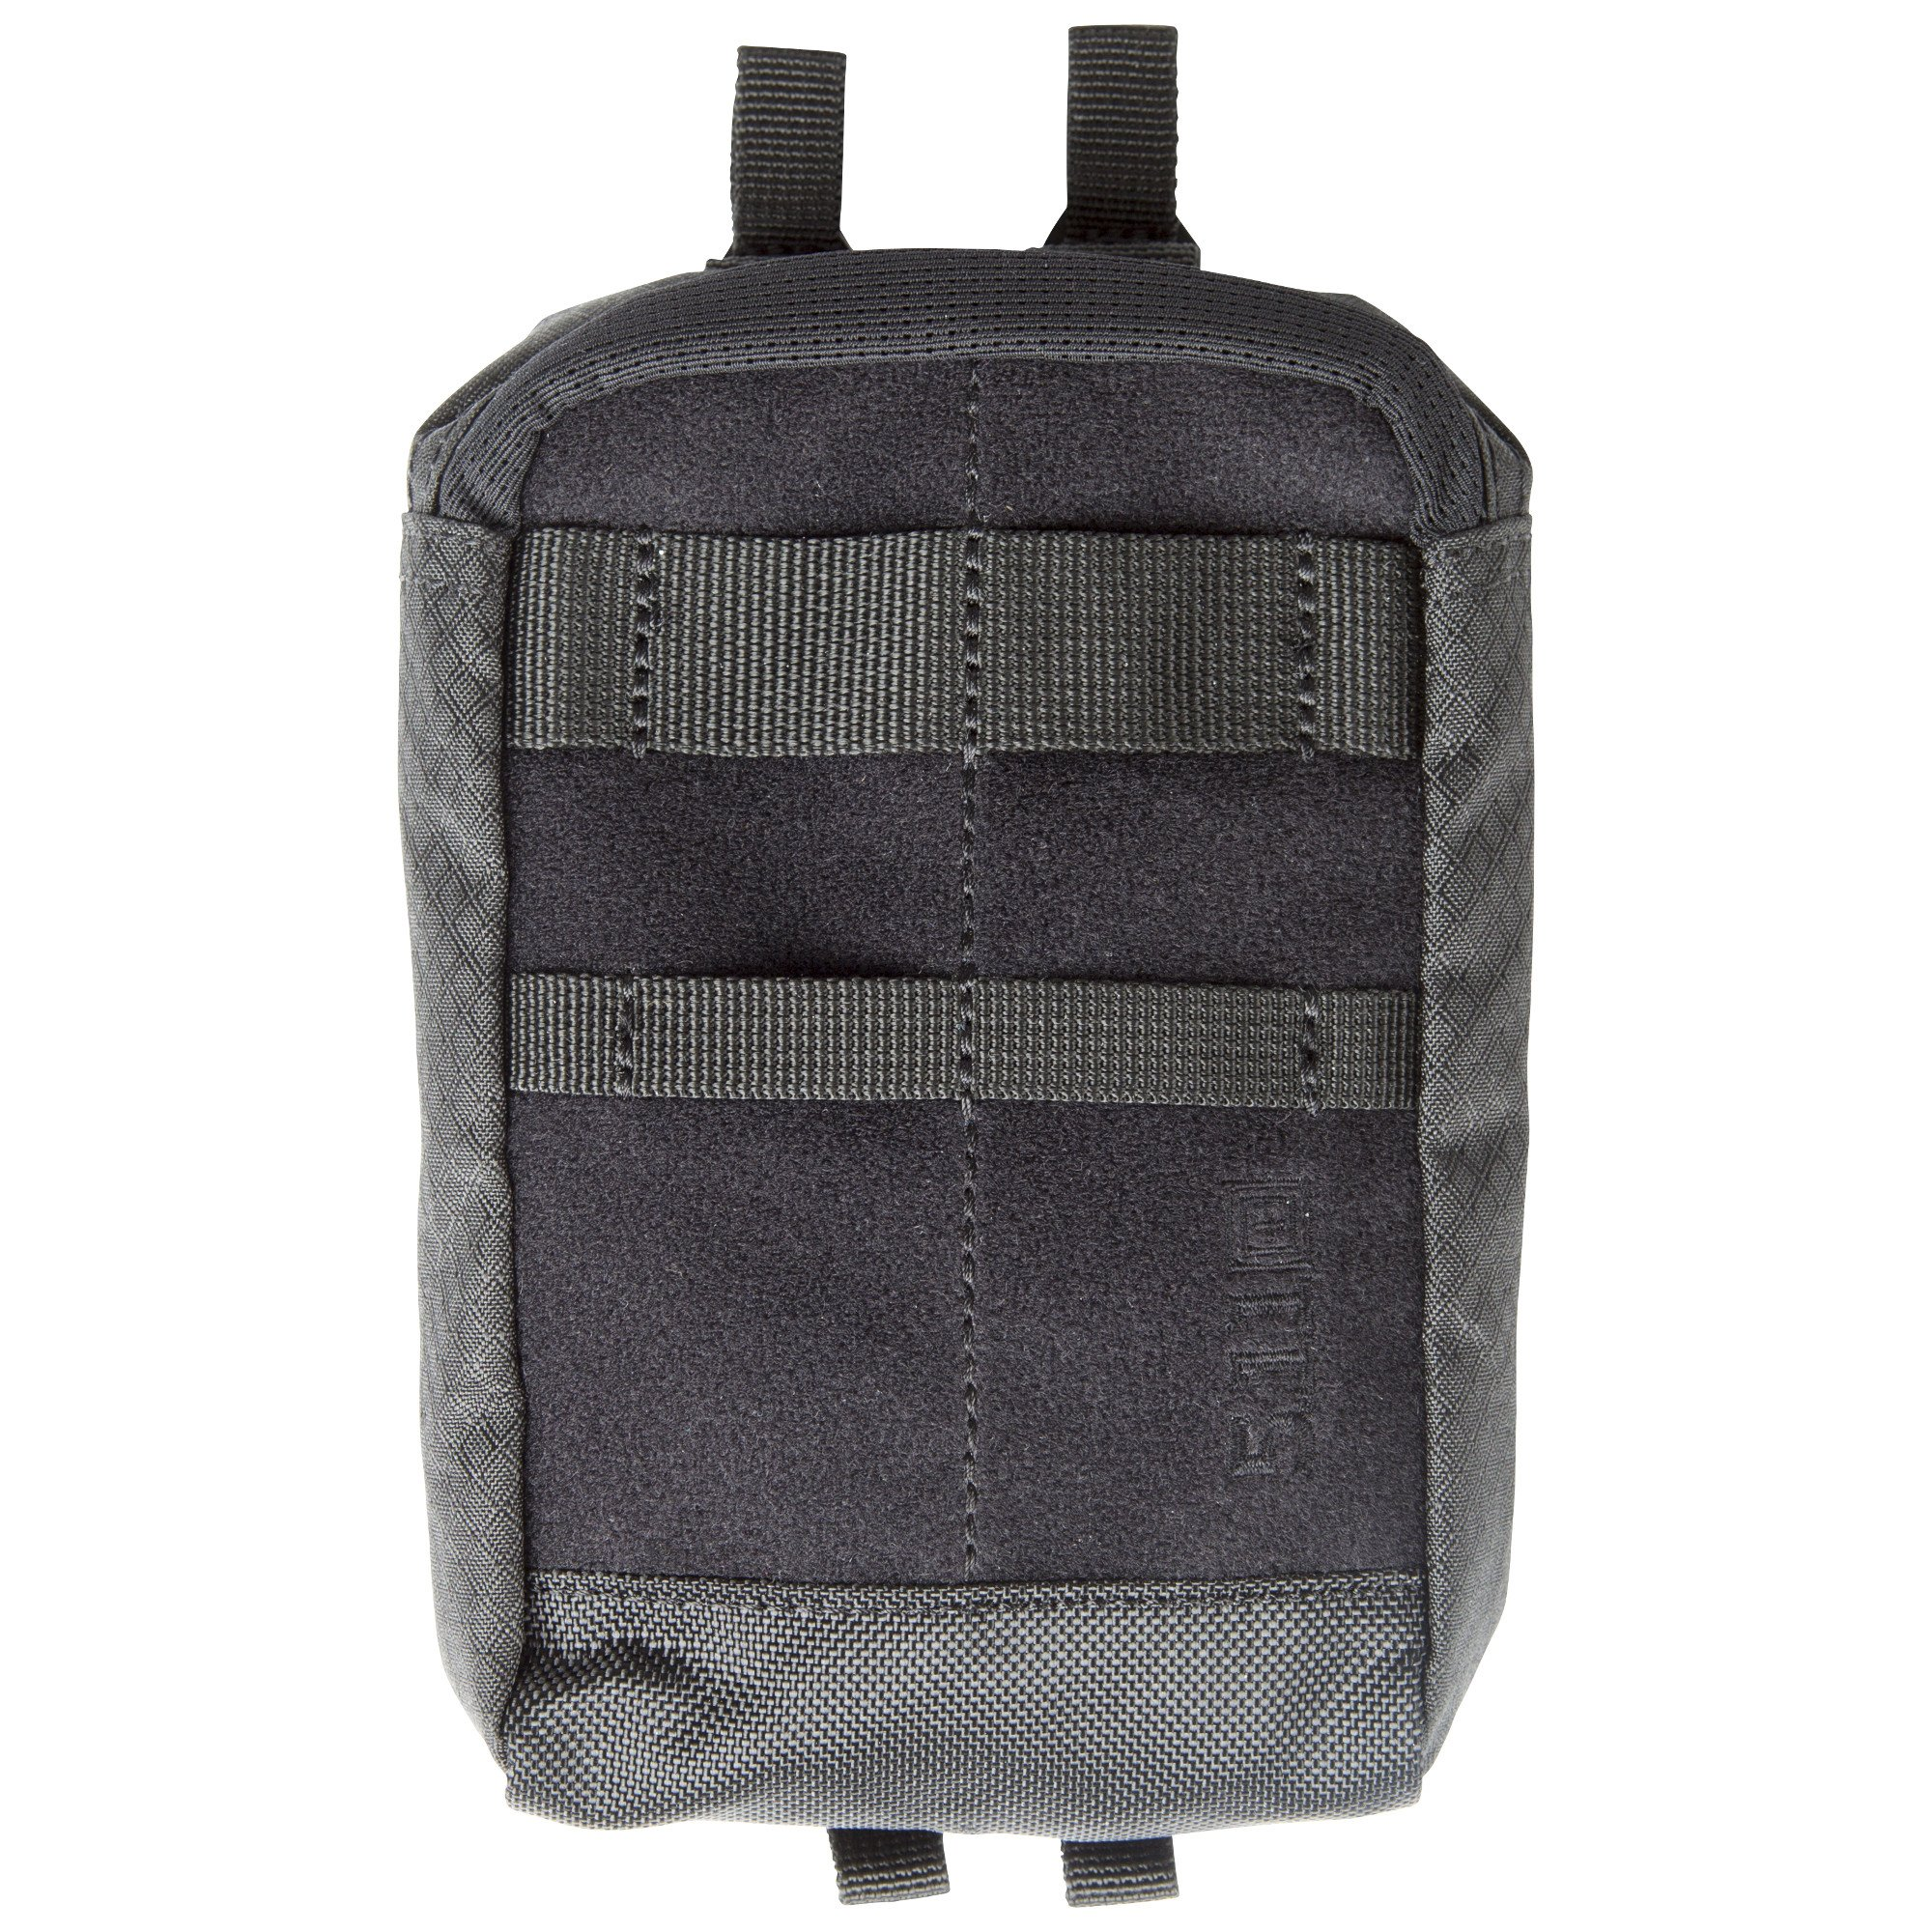 IGNITOR 4.6 POUCH – Black